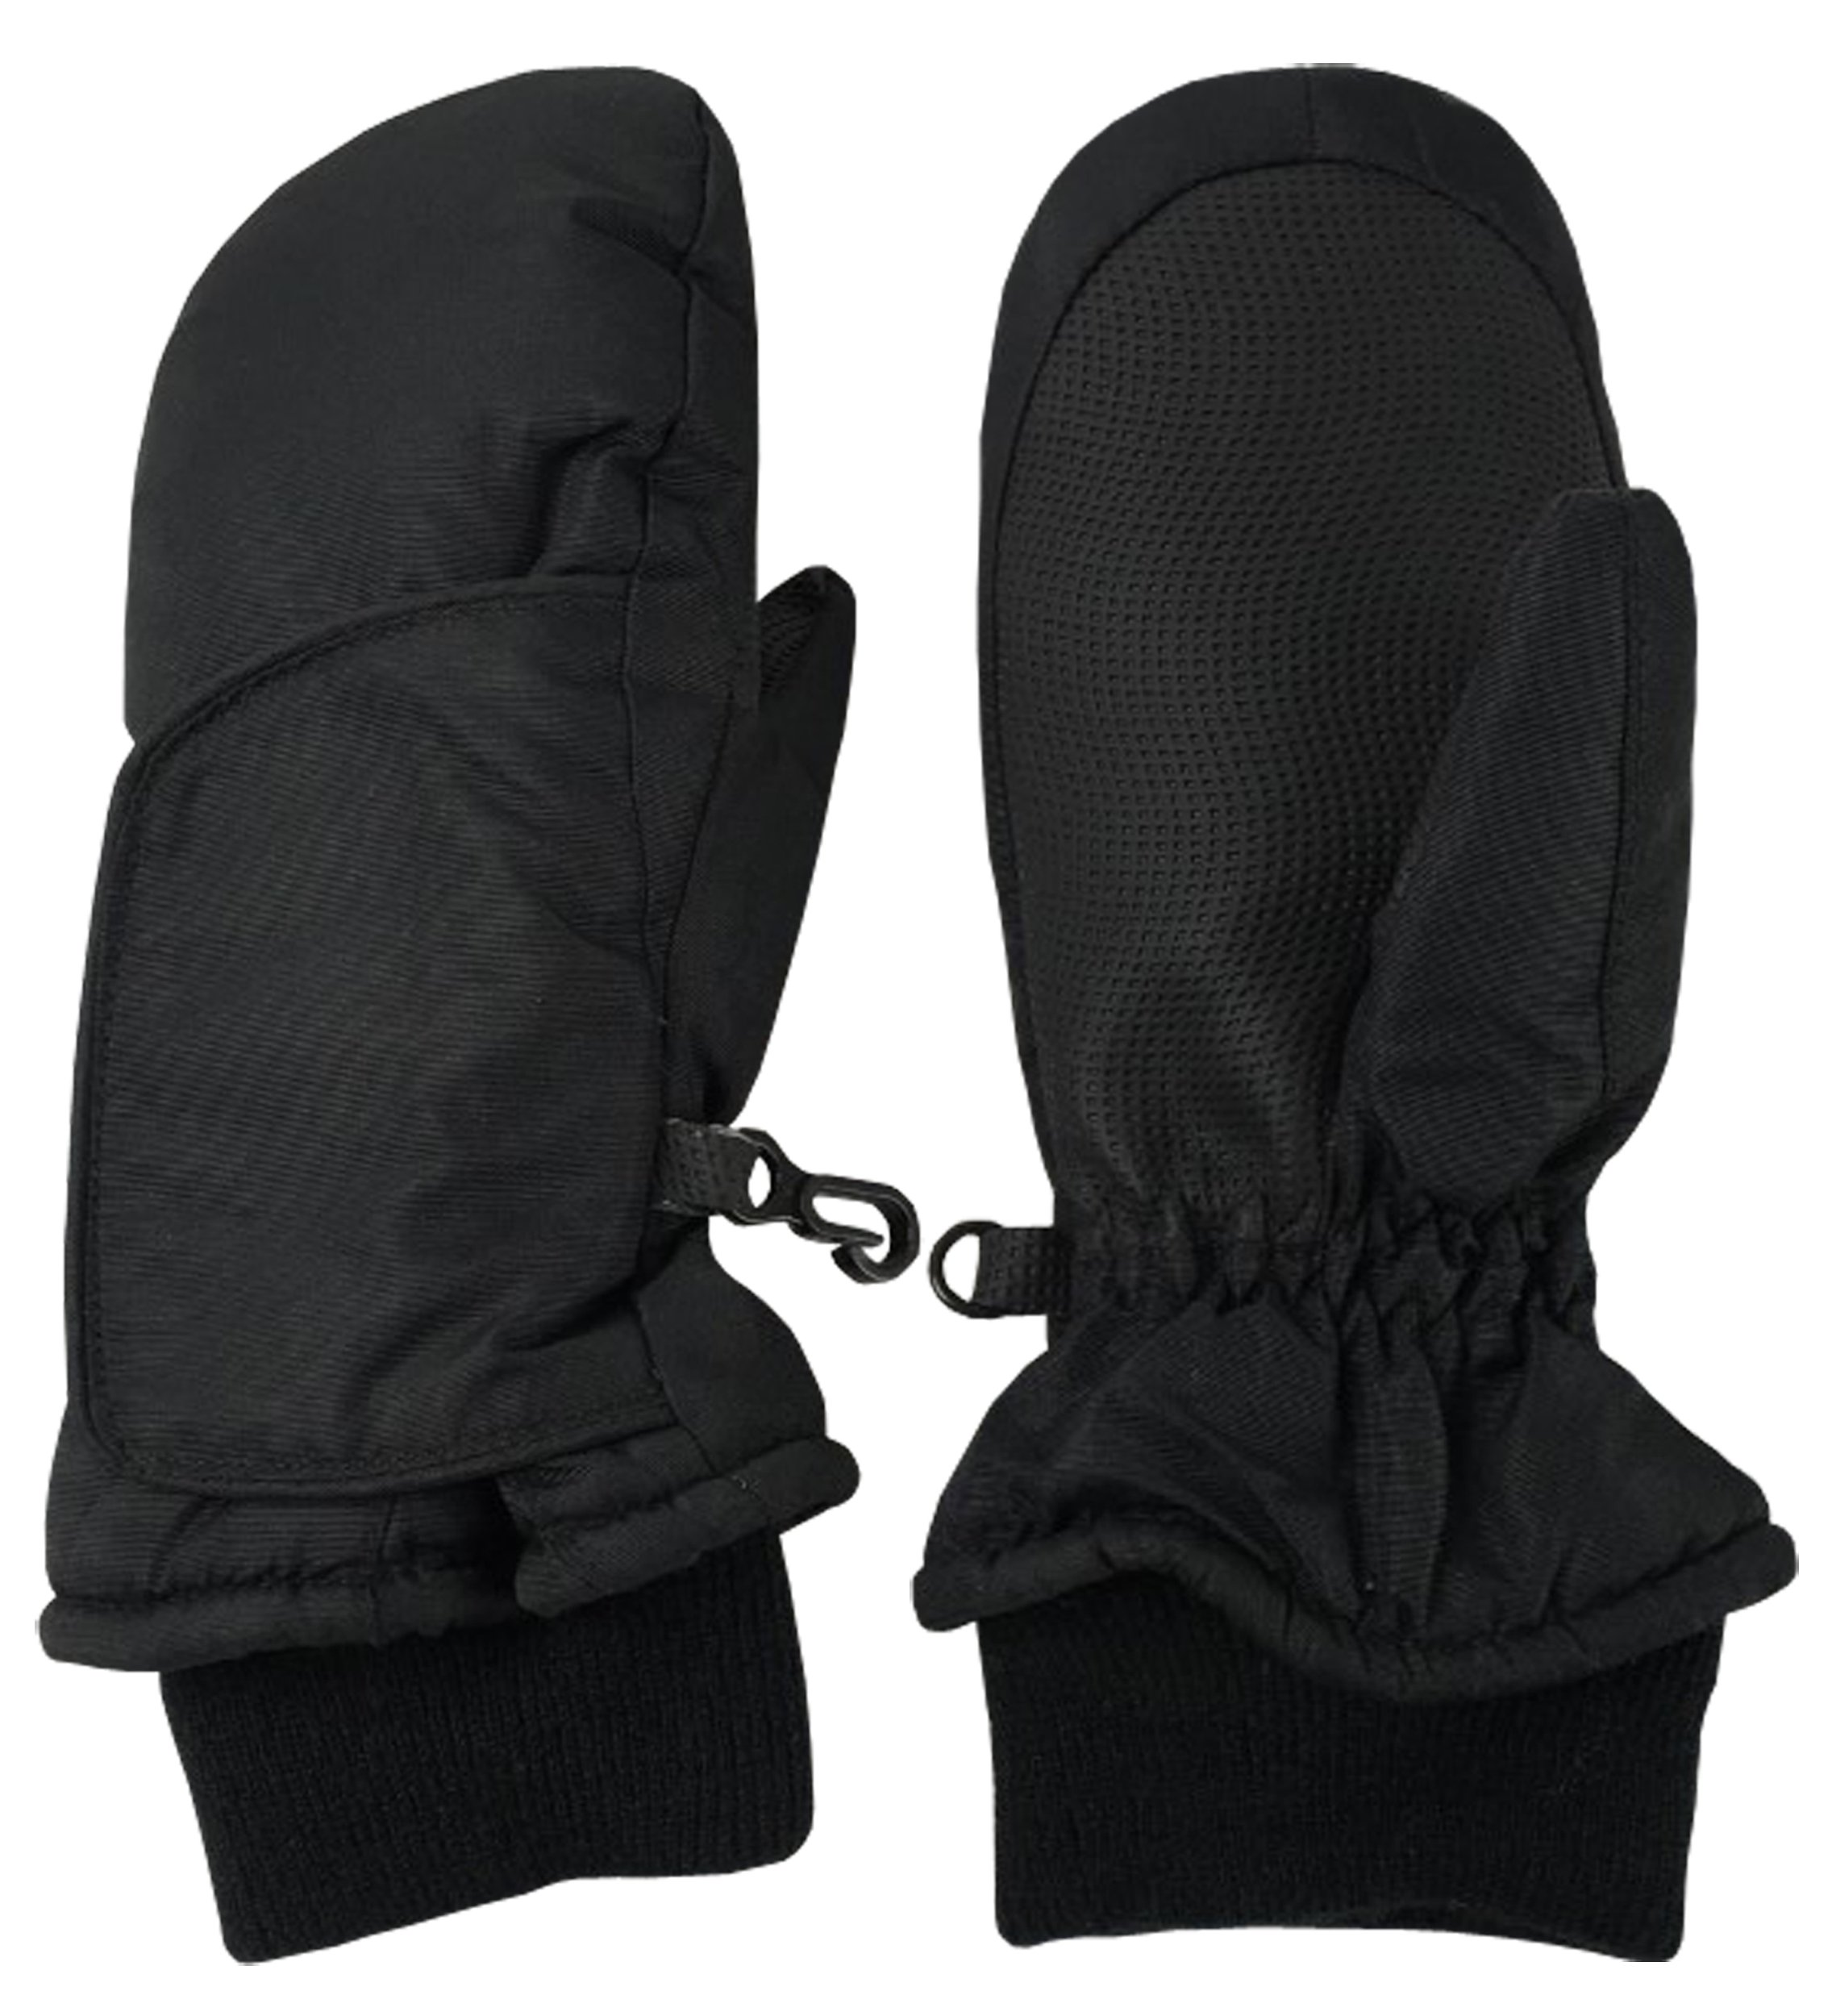 N'Ice Caps Kids and Baby Easy-On Wrap Waterproof Thinsulate Winter Snow Mitten (Black 3, 2-3 Years) by N'Ice Caps